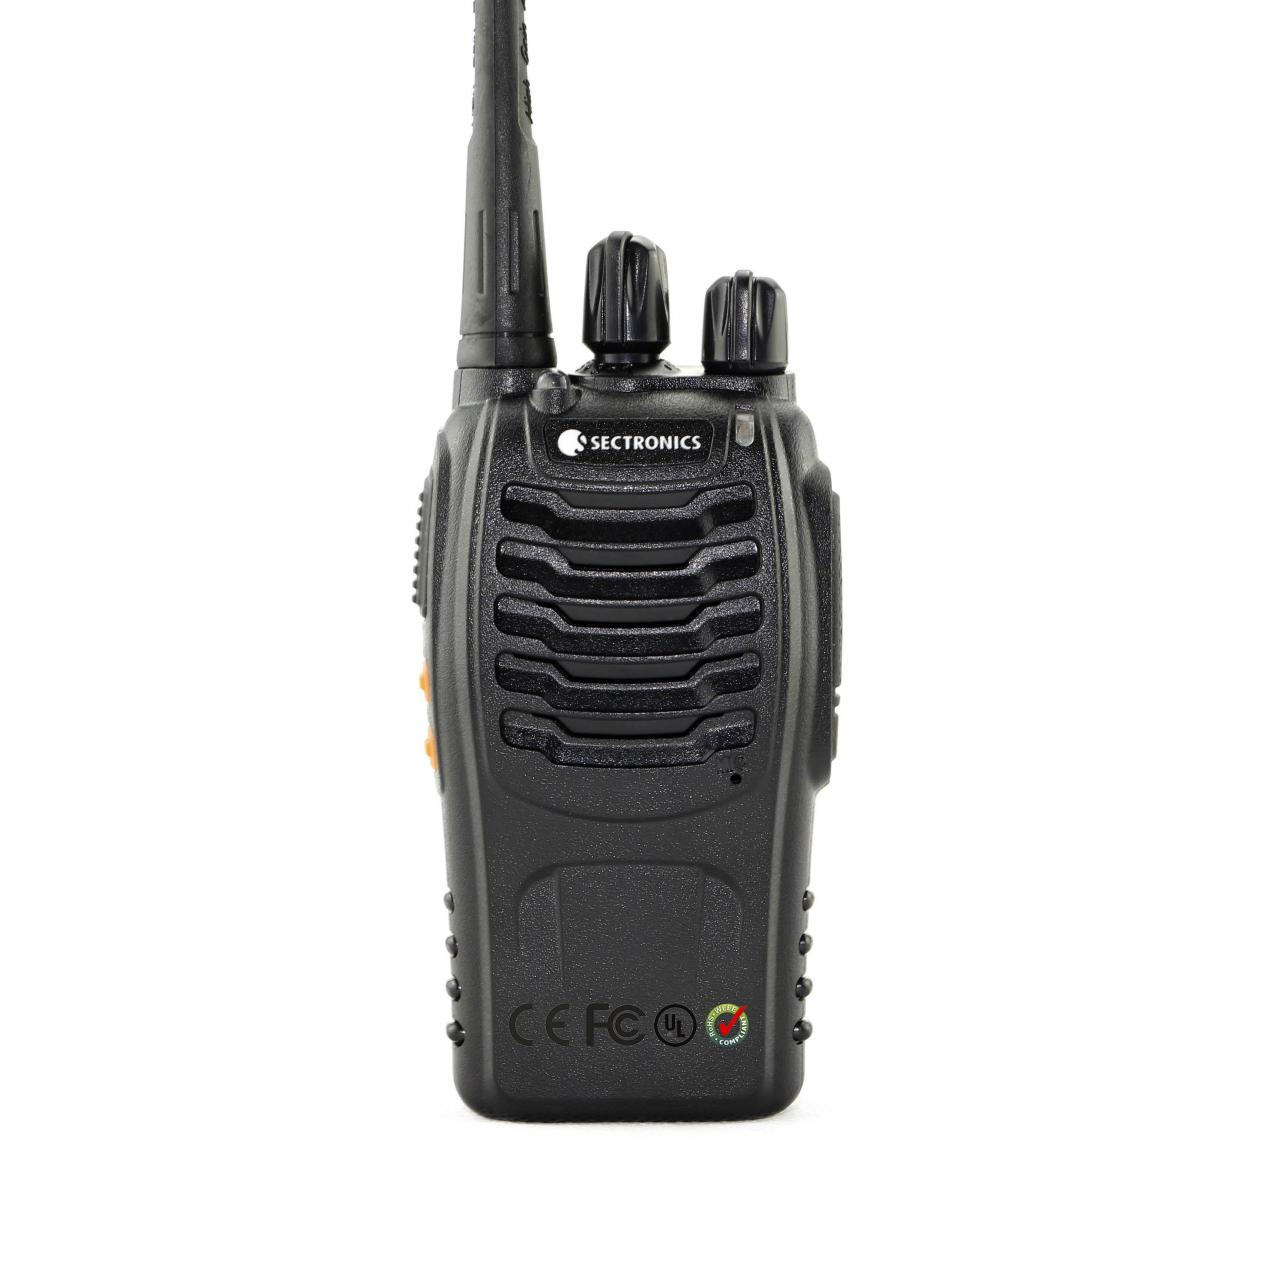 DP2800 Single Band Two Way Radio Manufactures